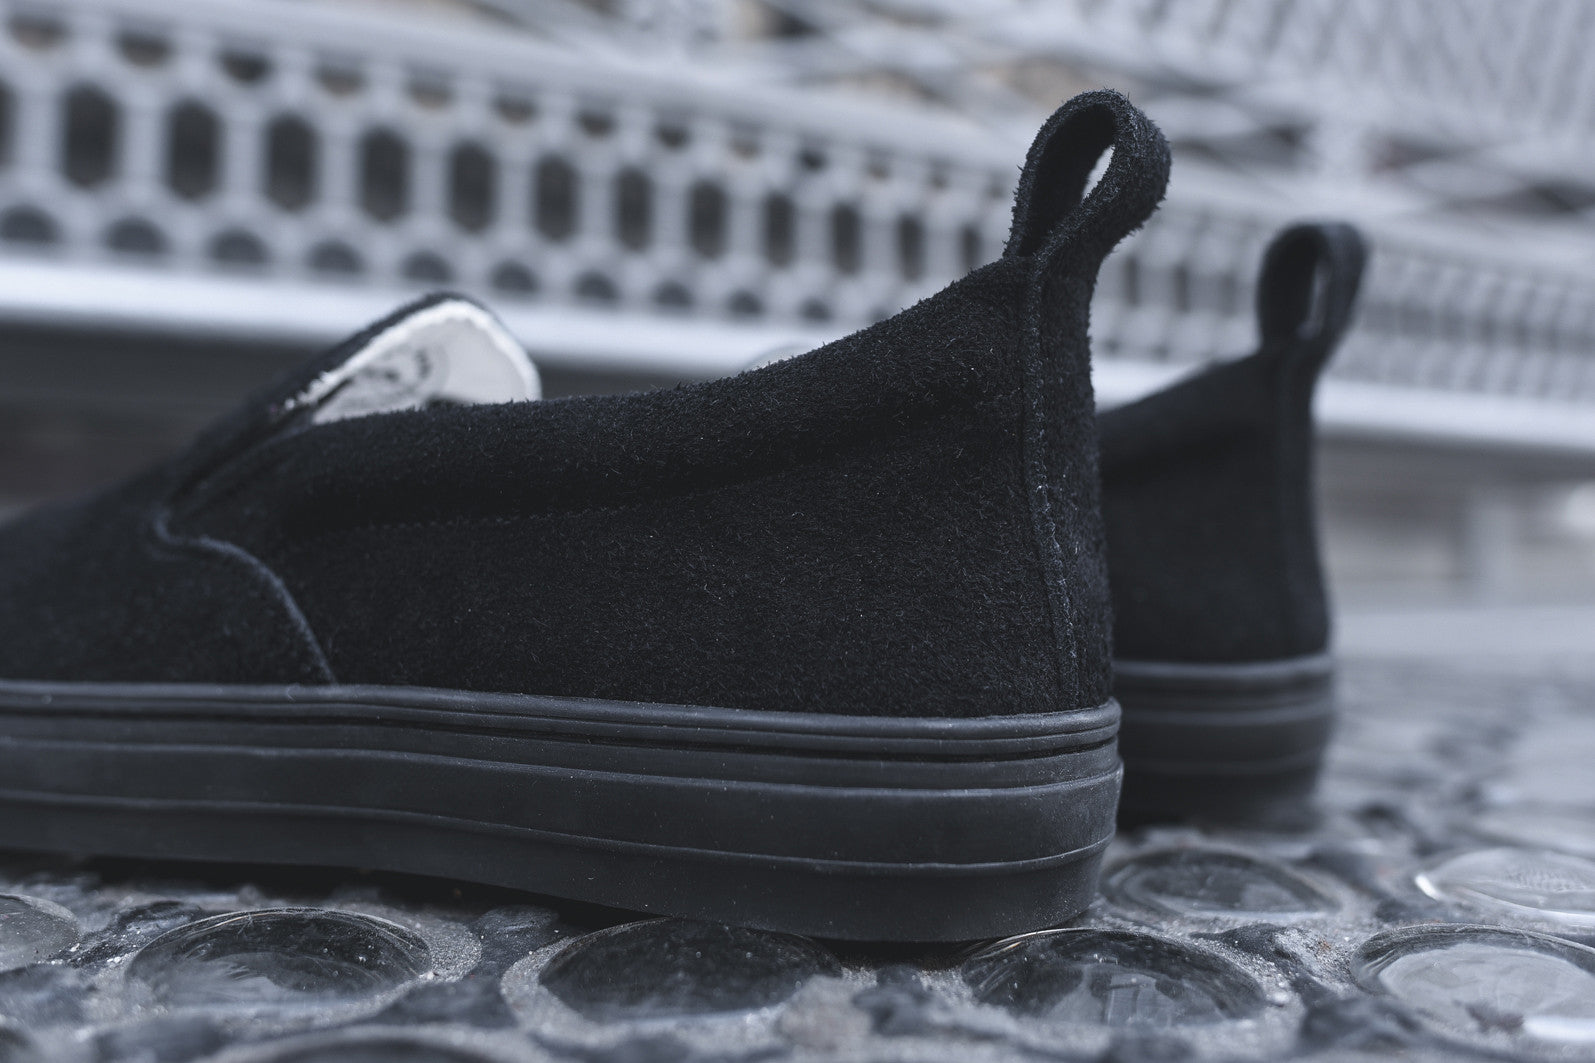 Buddy GS Low Slip-On - Night Black